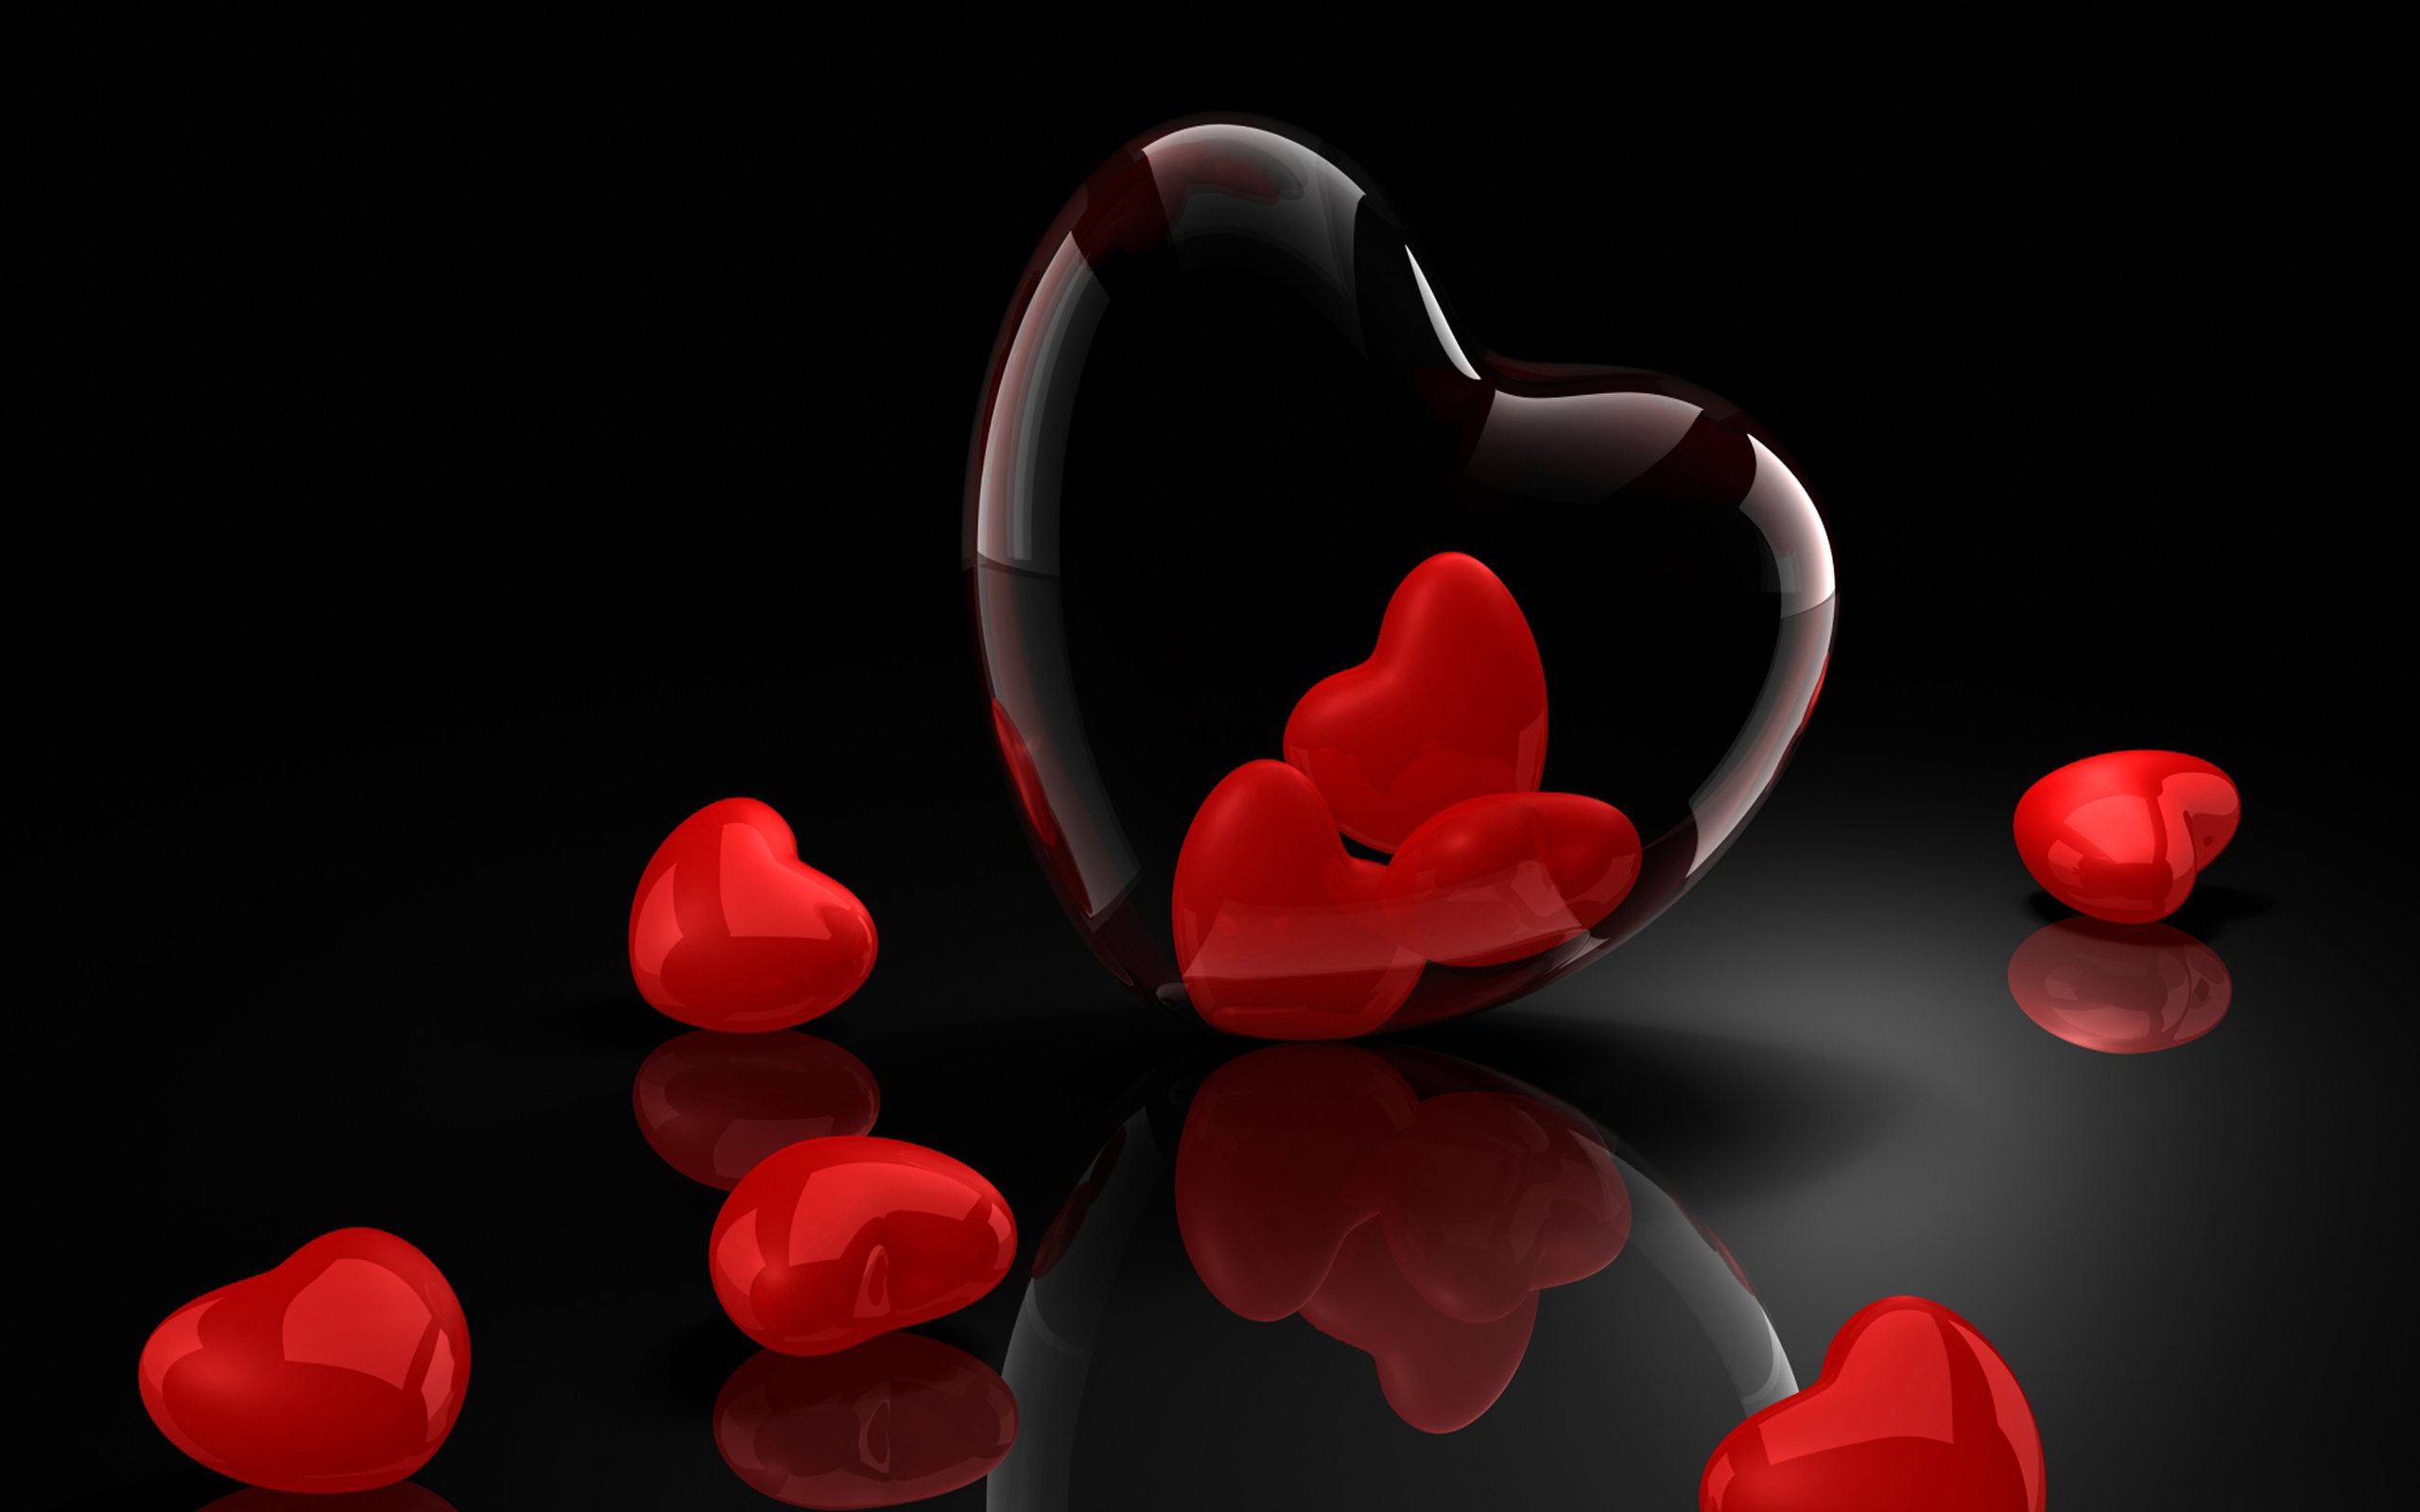 Cuore Hd Wallpaper Sfondi 2560x1600 Id704171 Wallpaper Abyss